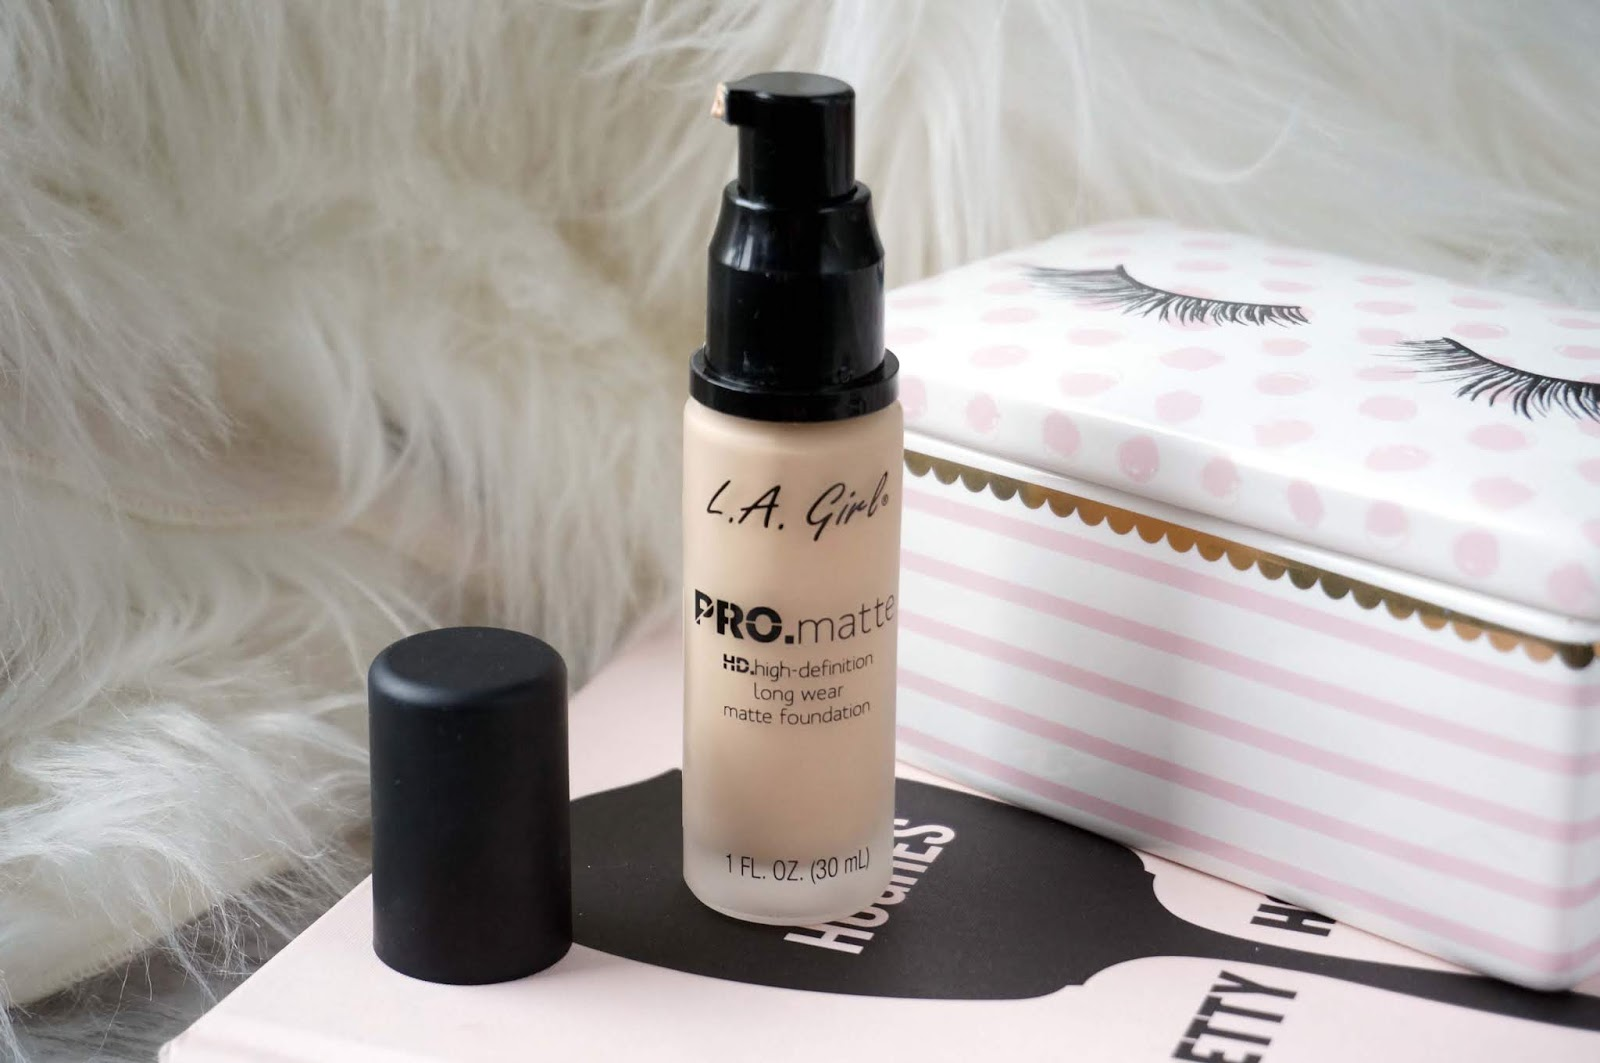 Joyce Lau La Girl Pro Matte Foundation Review Oily Combination Skin I Am An Avid Fan Of The Coverage Illuminating And Im On My 4th Or Even 5th Bottle That Good Stuff They Came Out With